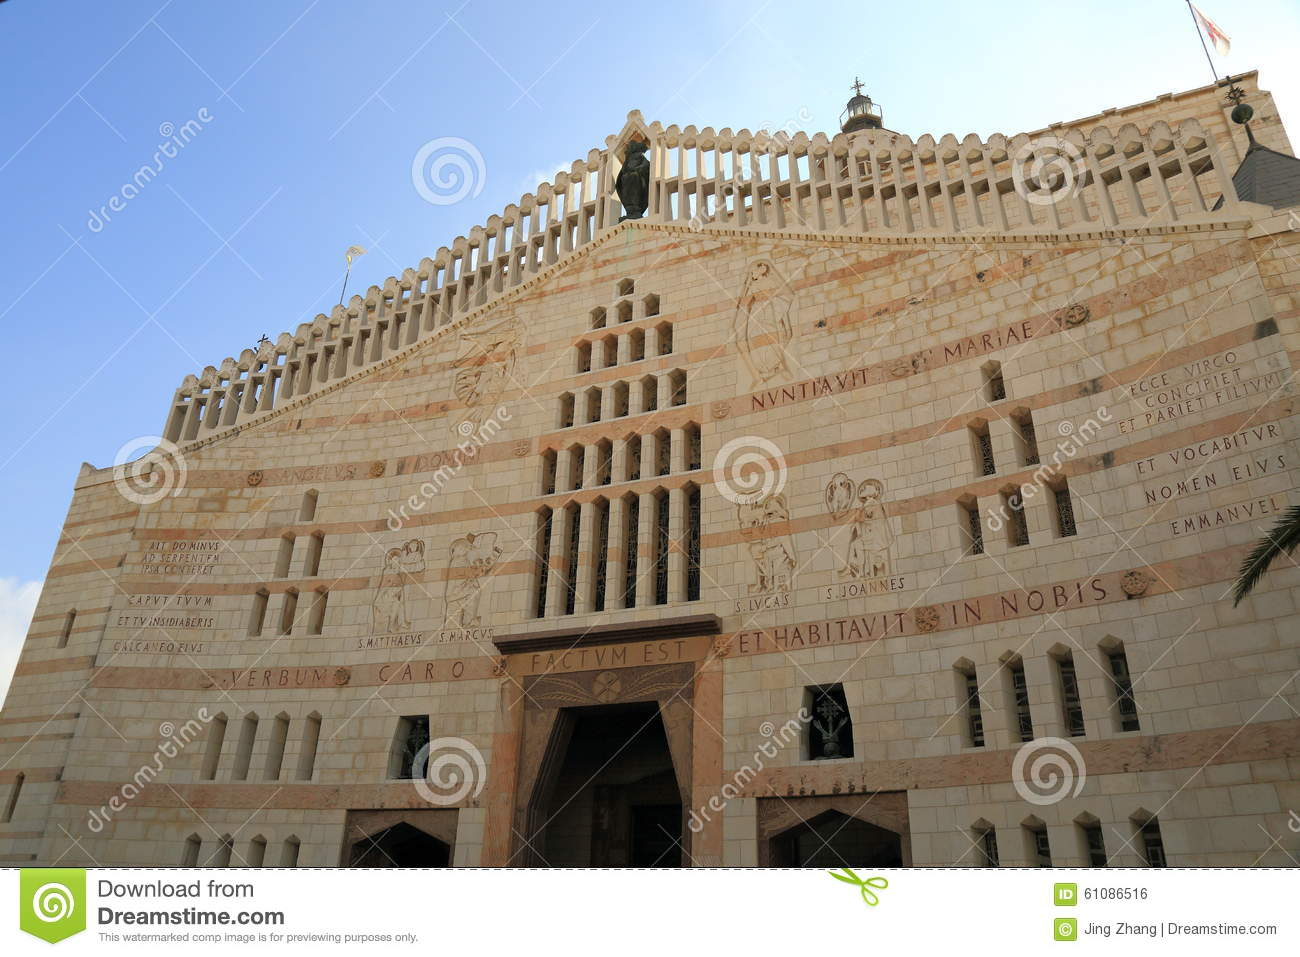 The Church Of The Annunciation Stock Photo - Image: 61086516